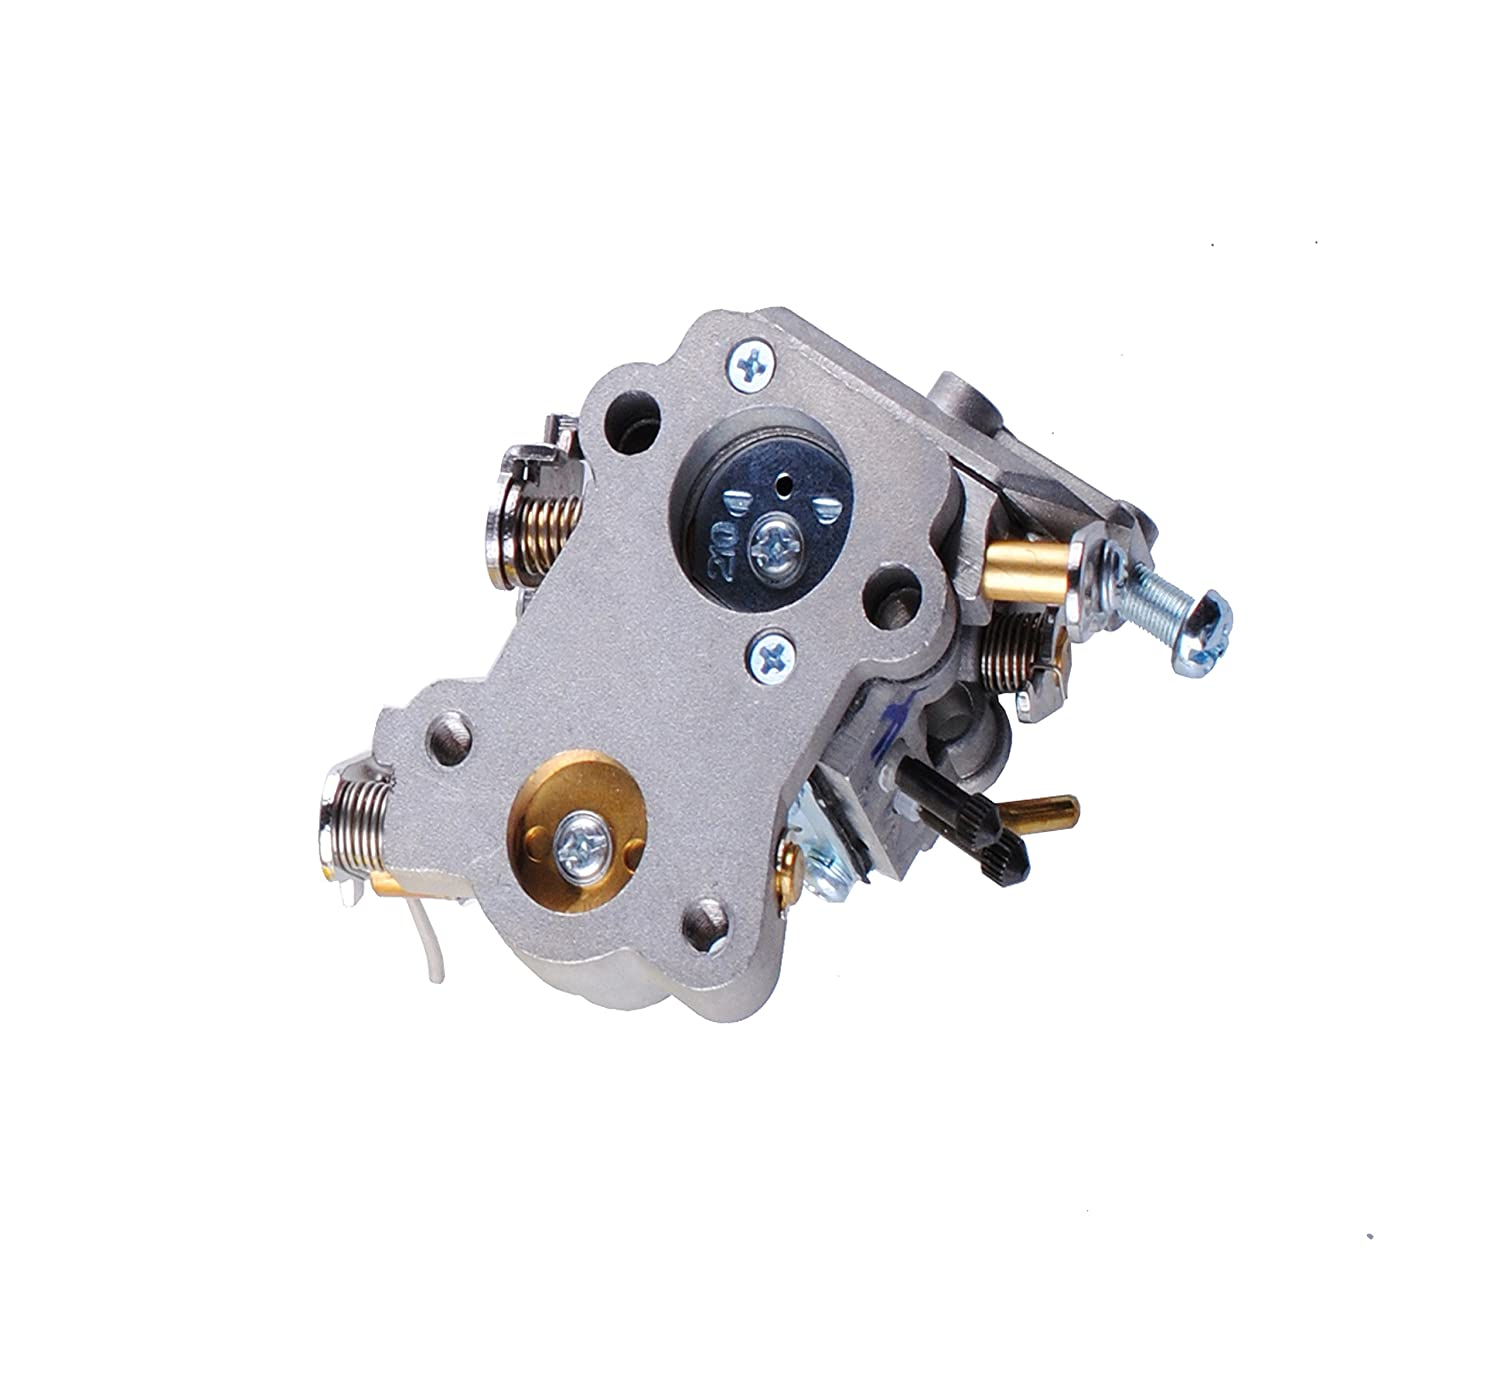 Podoy P3314 Carburetor For Poulan Chainsaw Parts 545070601 Air Fuel Schematic Filter With Adjustment Tool Tune Up